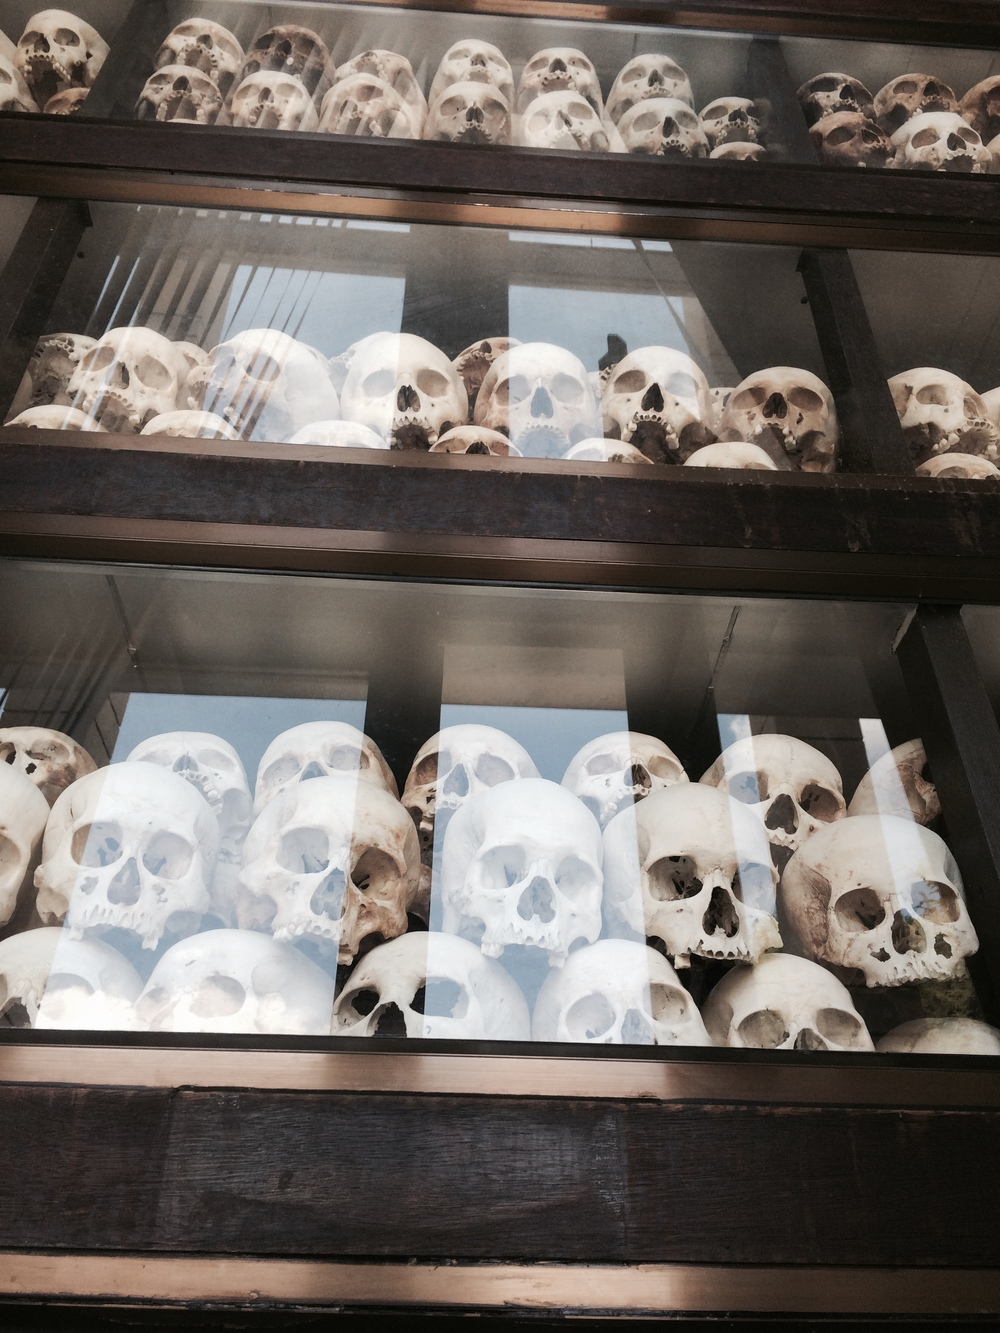 this was scary. I couldn't believe my eyes. I actually saw these skulls. There were thousands of them. It was shocking.